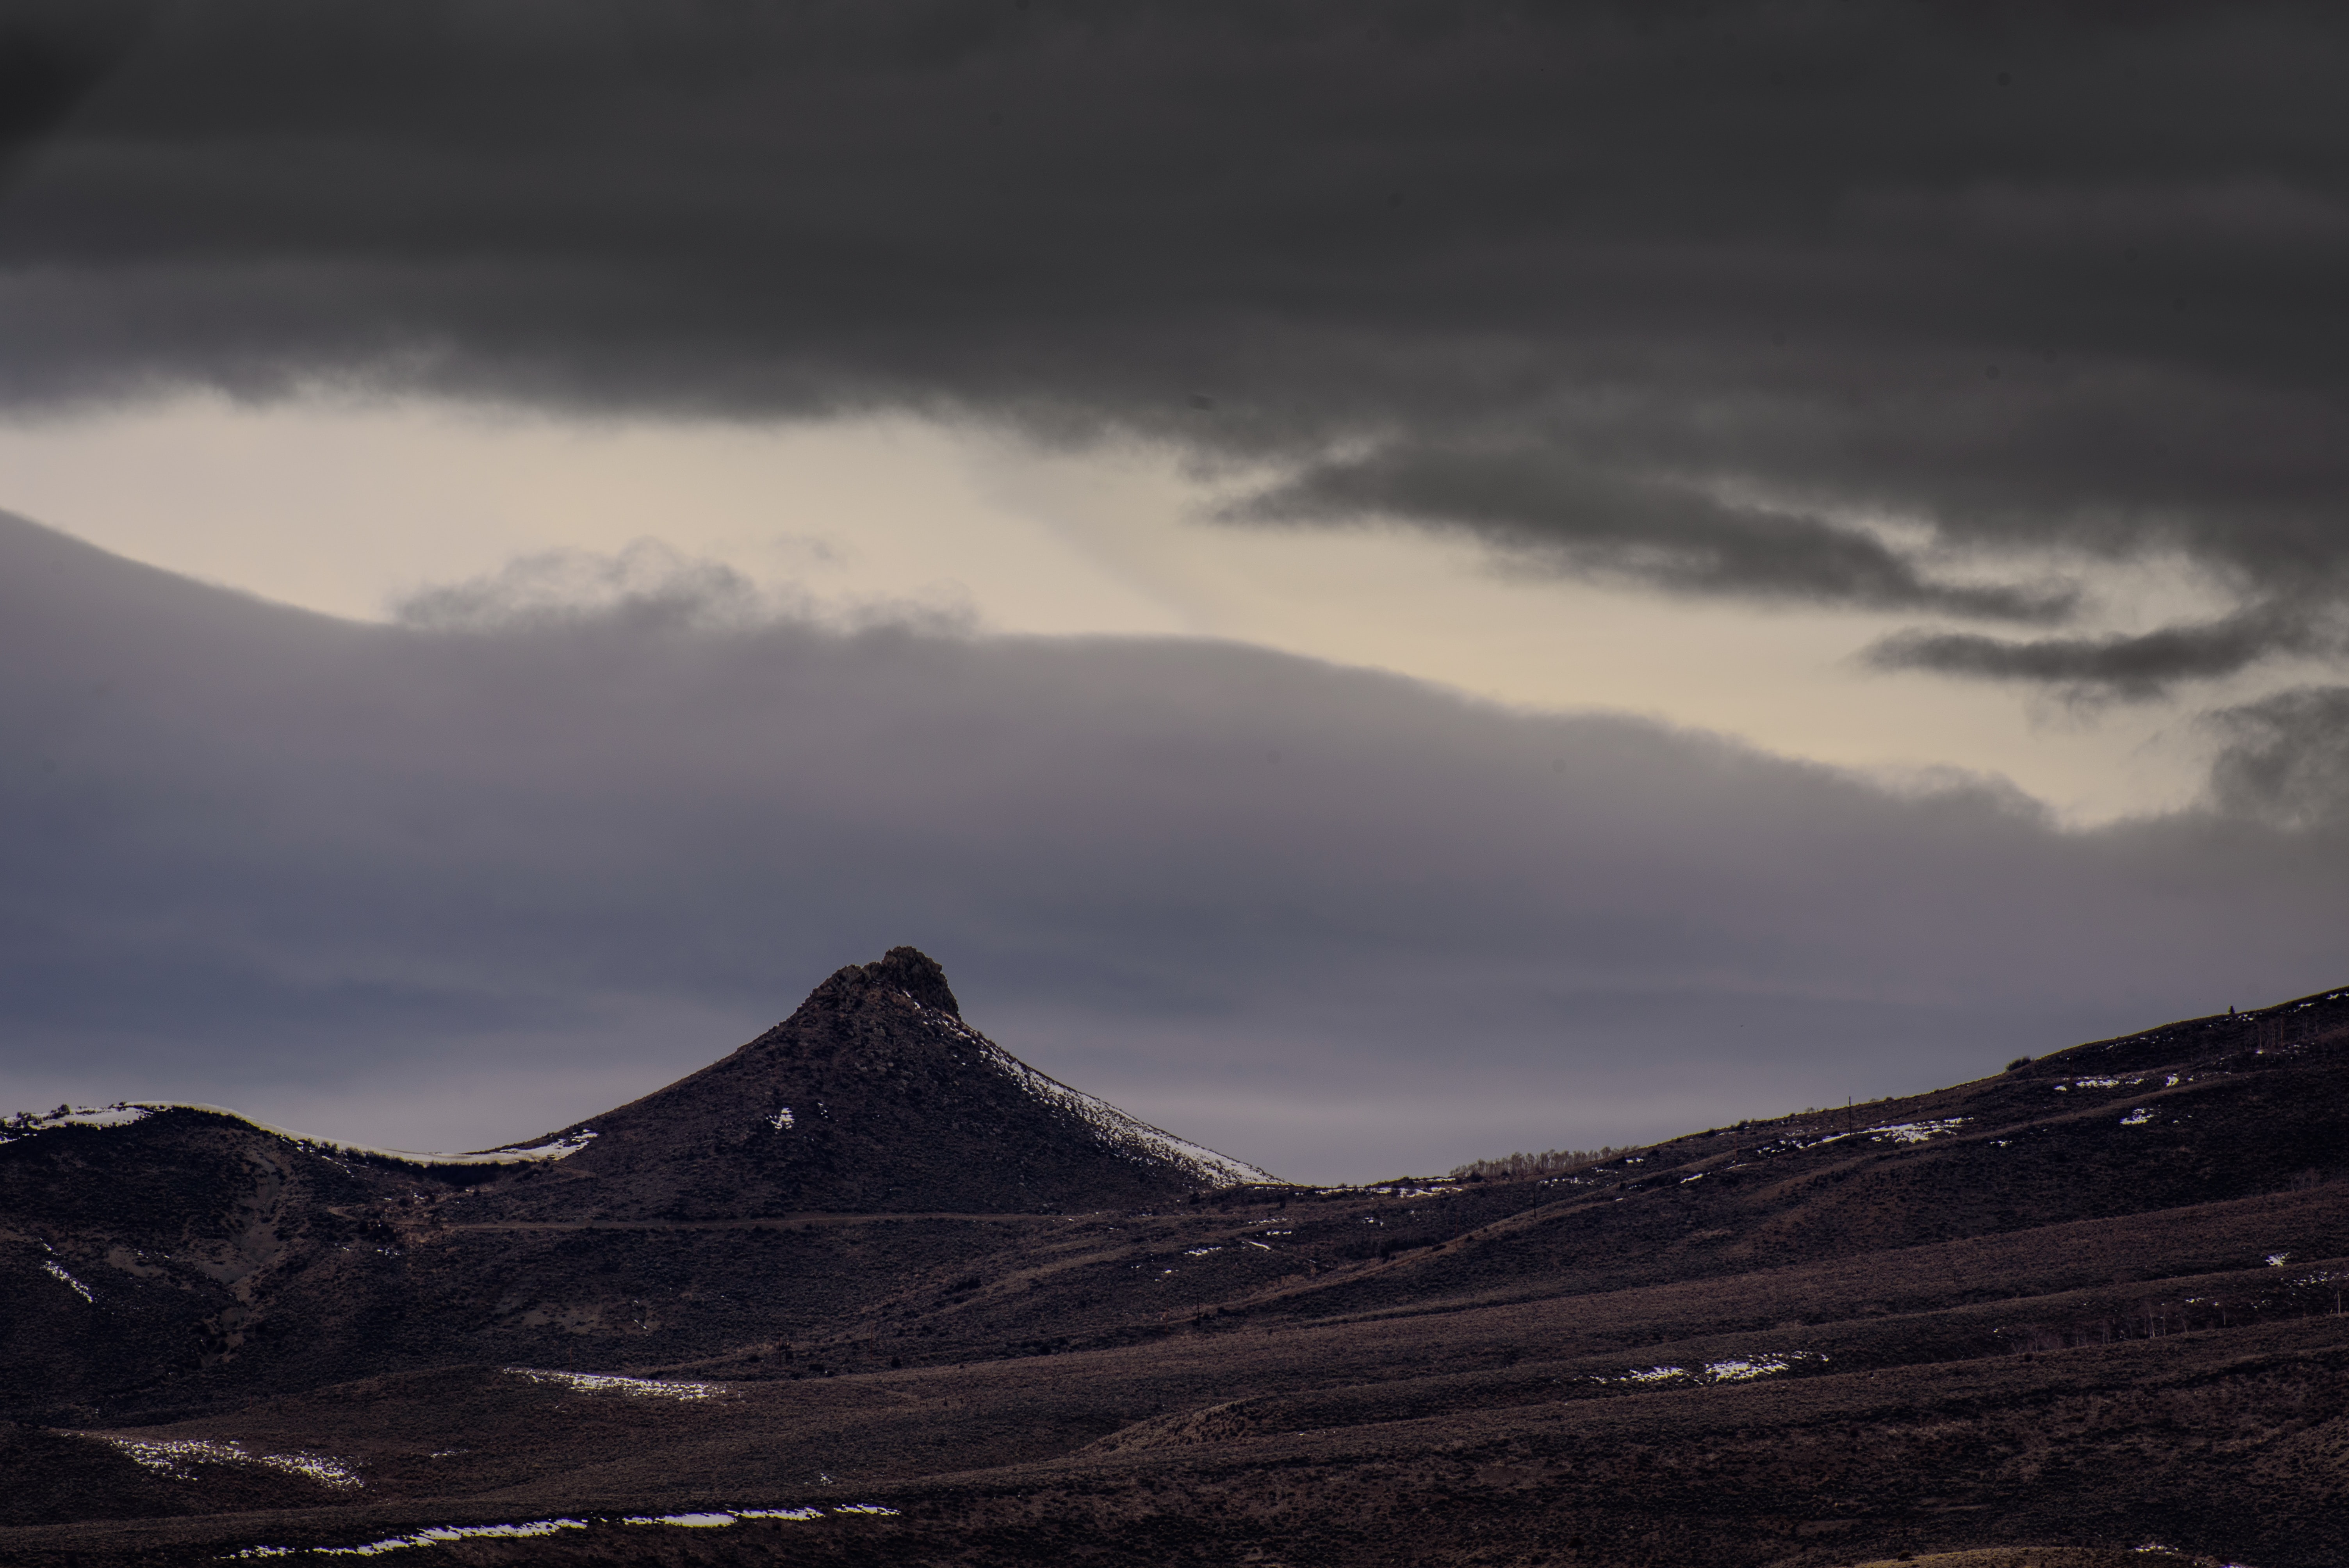 A jagged mountain peak crowns the horizon under thick clouds